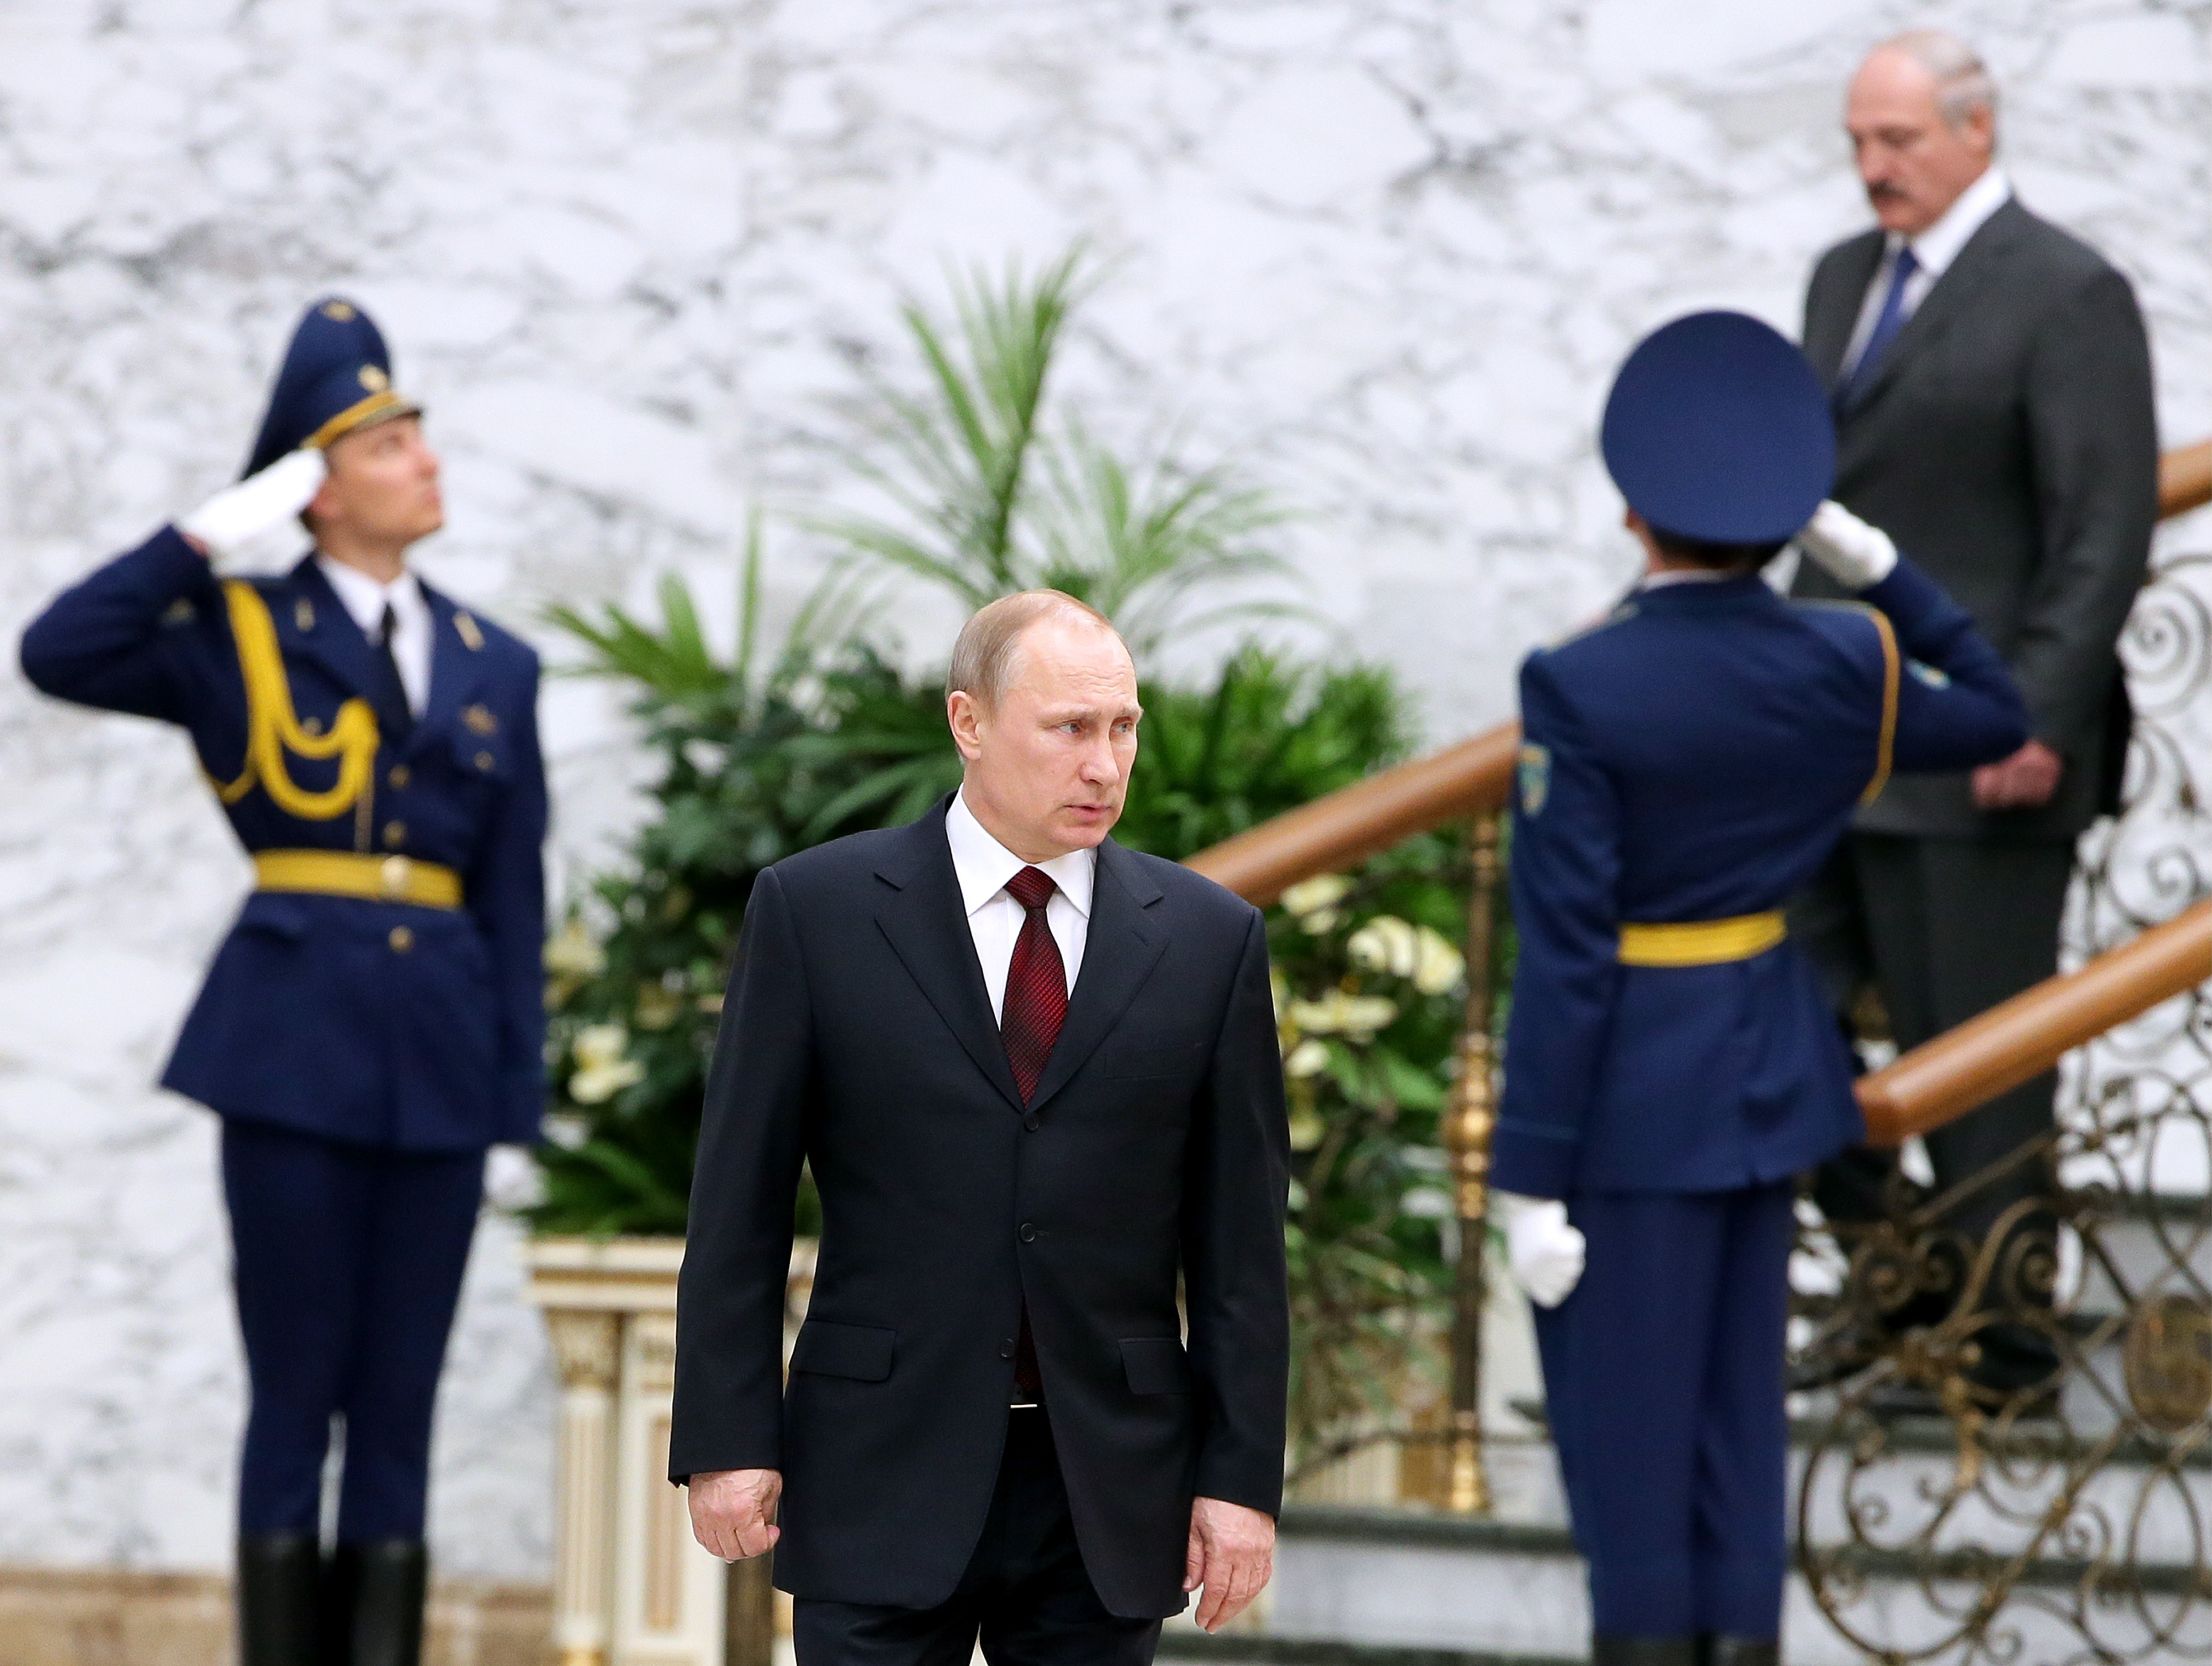 President Vladimir Putin of Russia seen after a Supreme Eurasian Economic Council meeting in Minsk, Belarus on April 29, 2014.